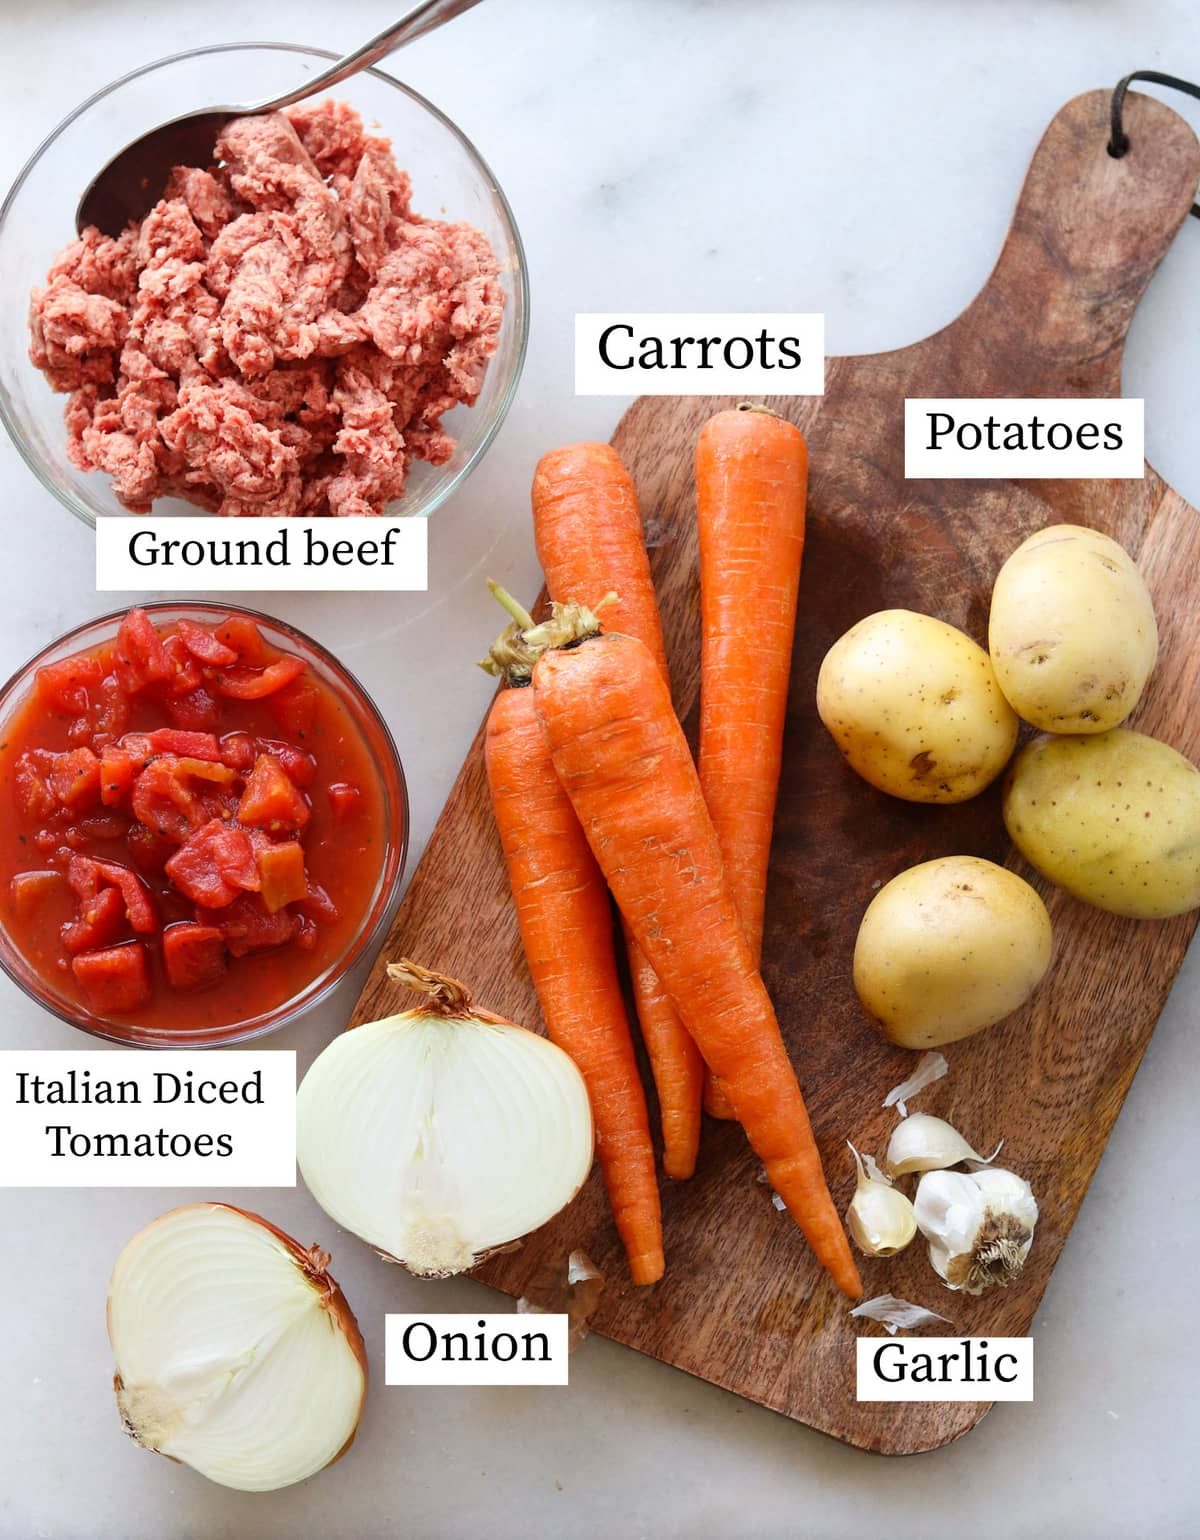 The recipe ingredients laid out on a cutting board and labeled: ground beef, carrots, potatoes, garlic, onion, and tomatoes.